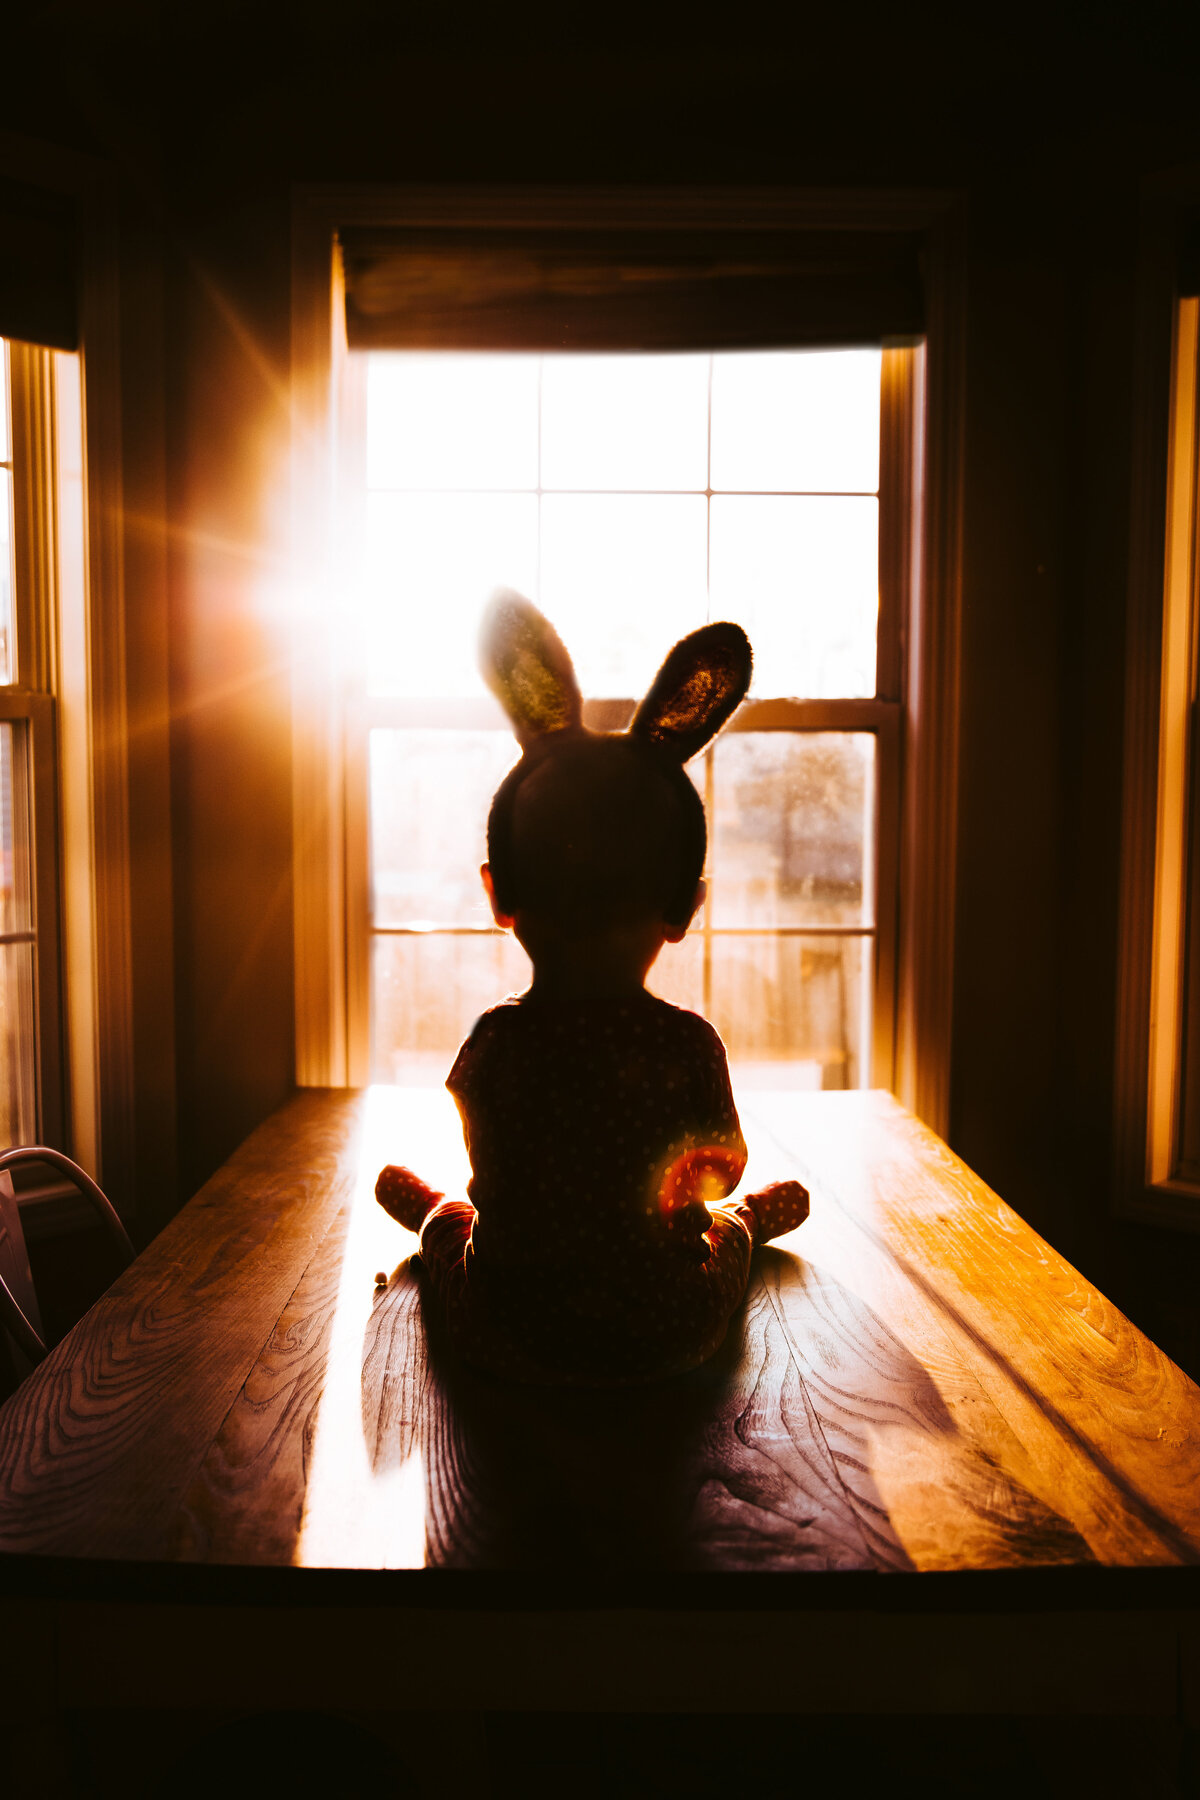 silhouette of baby sitting on table  with bunny ears on